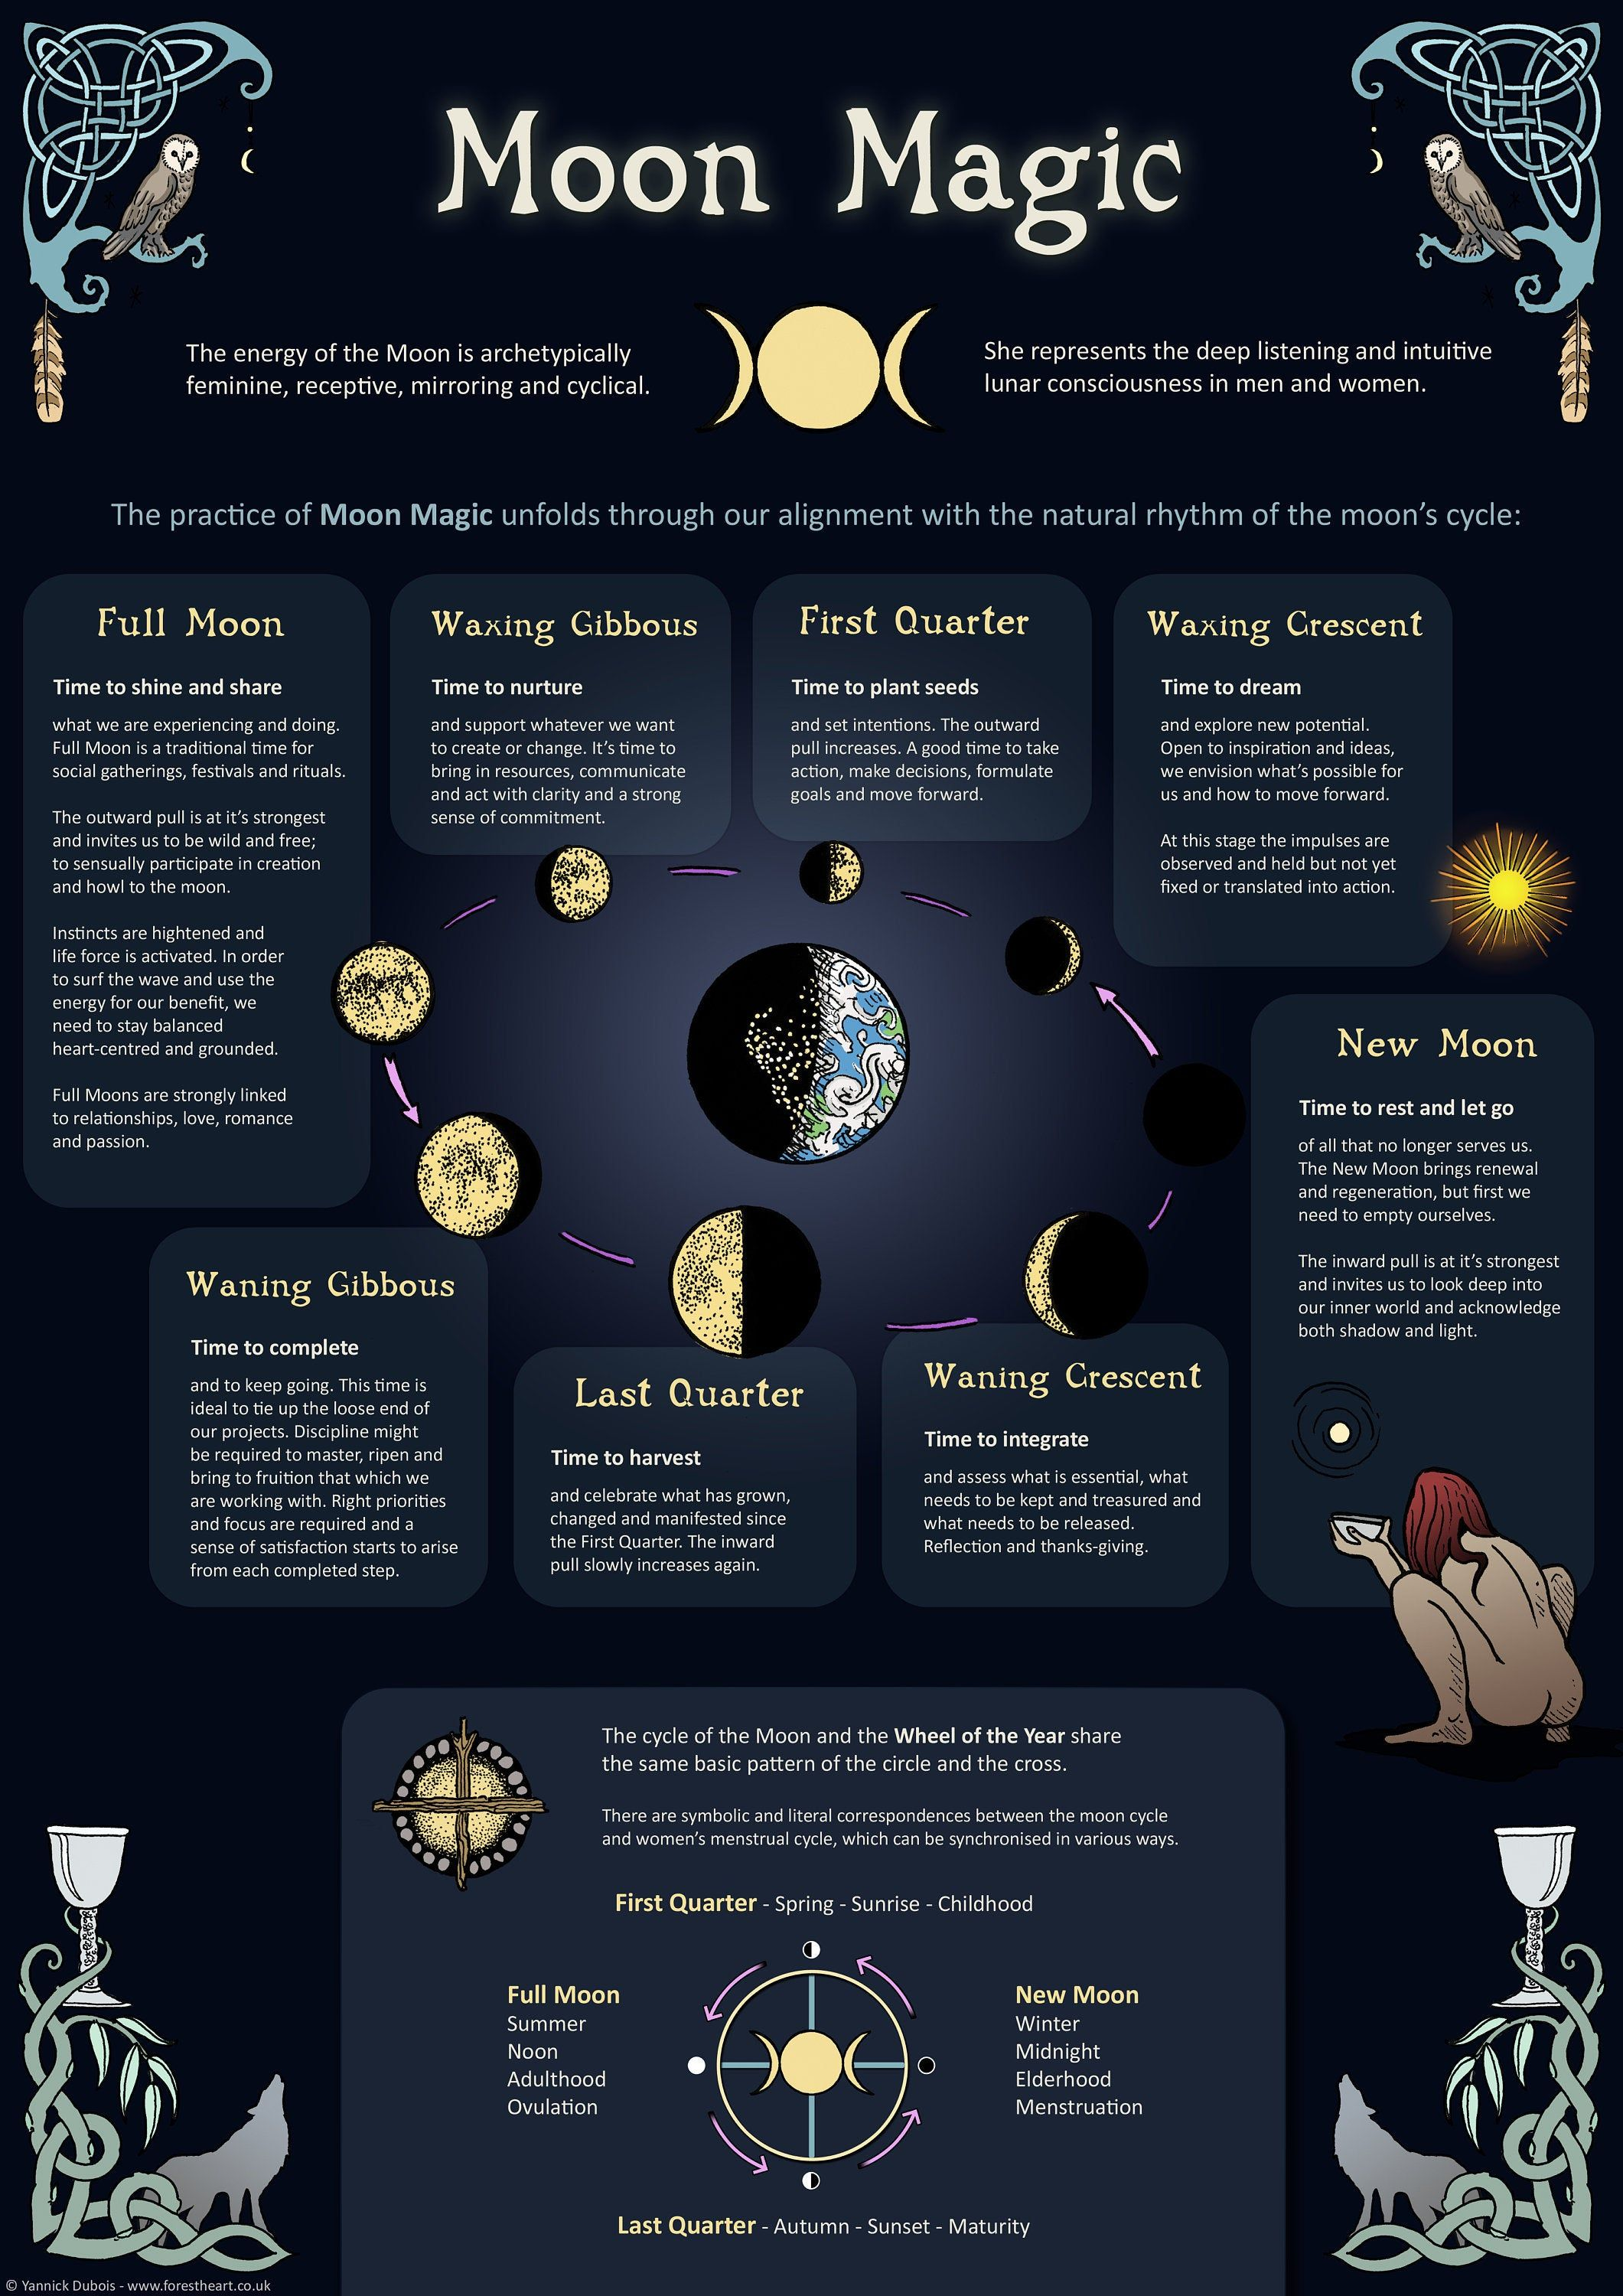 Moon Magic - Infographic - A3 Poster